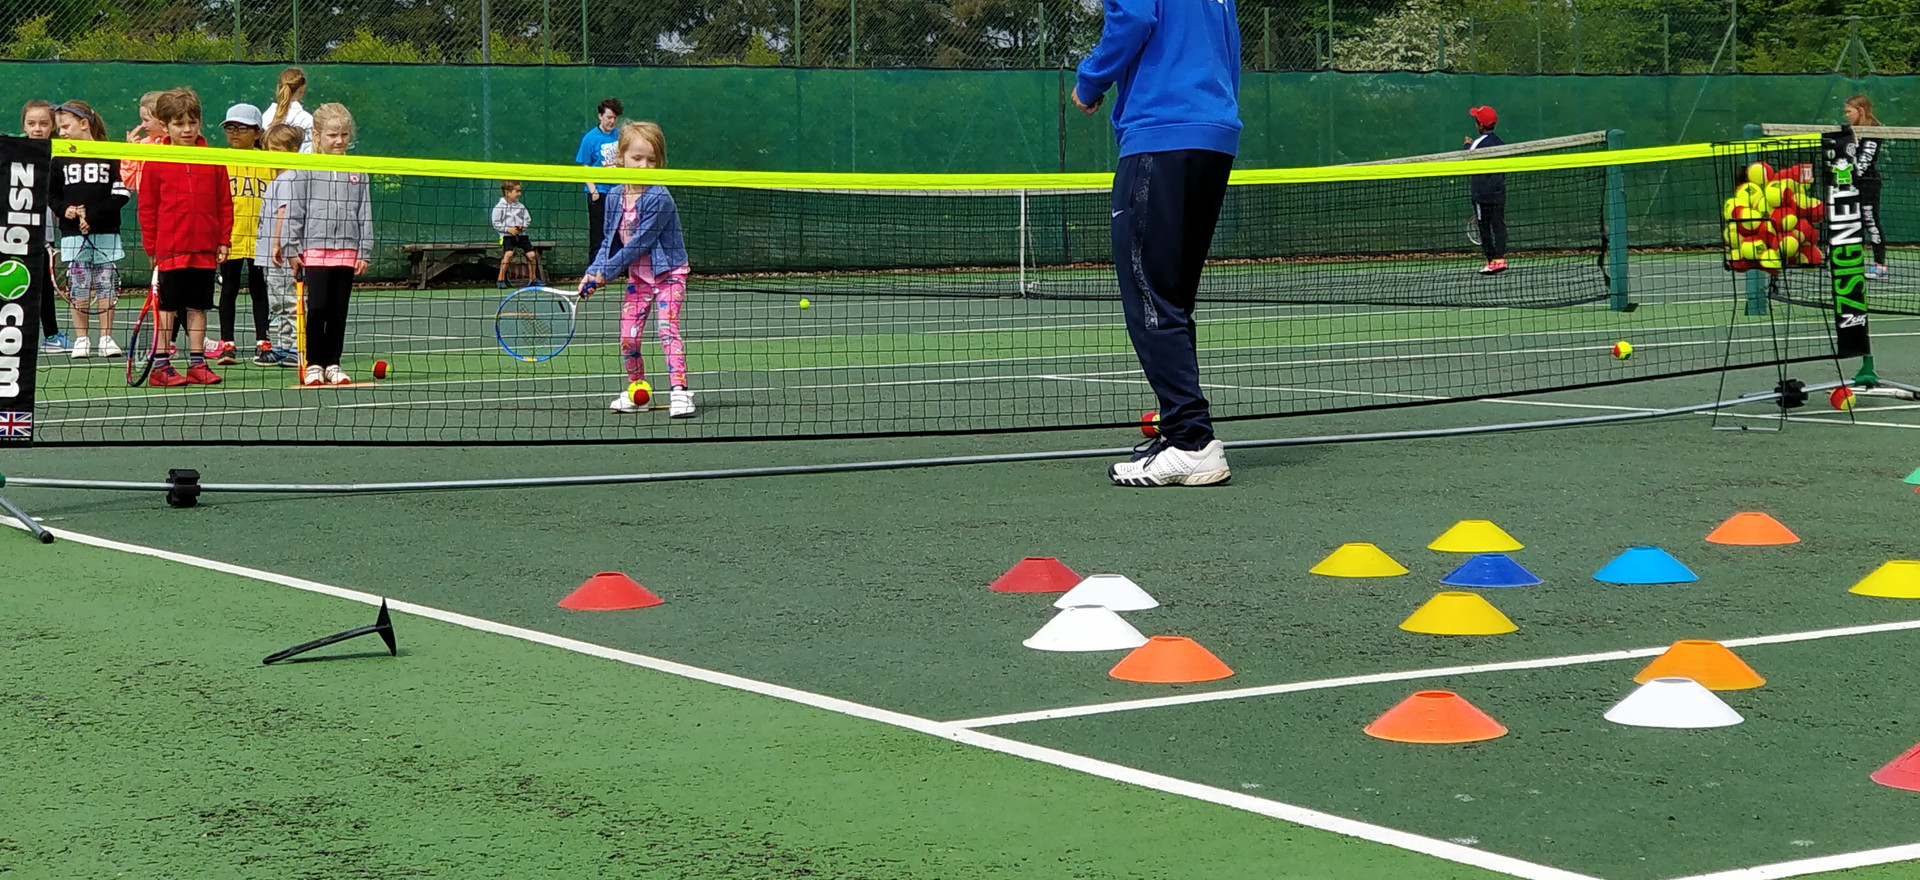 Junior coaching requires some colourful equipment!